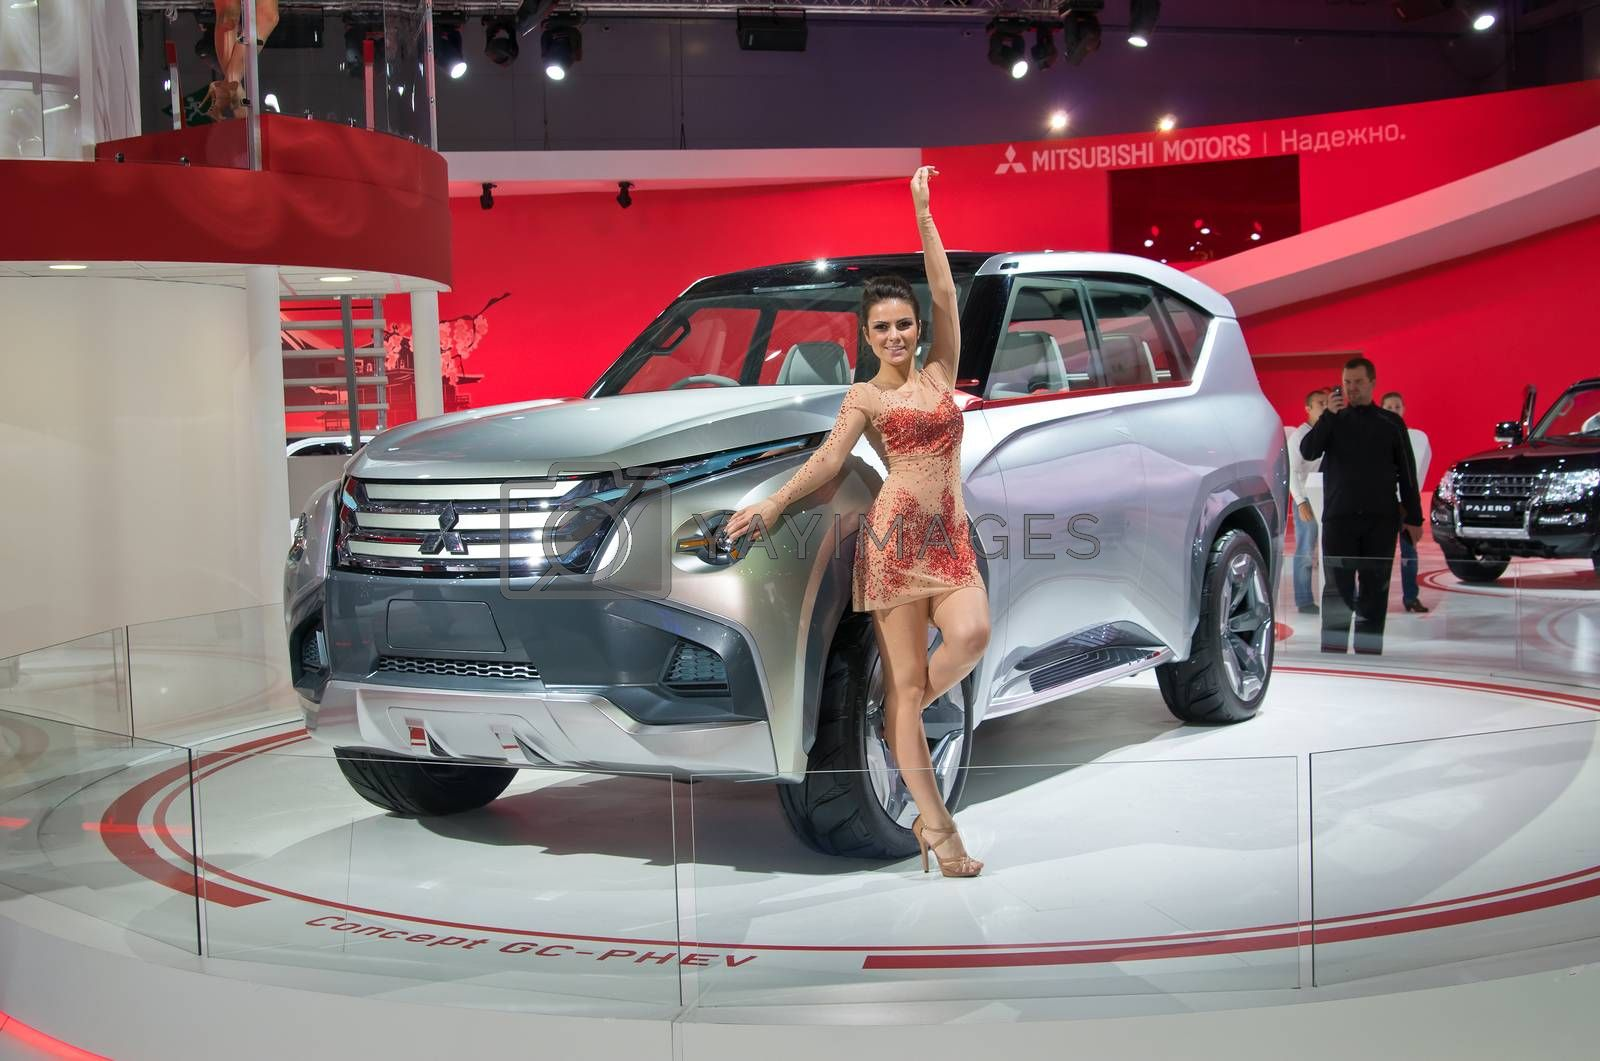 MOSCOW-SEPTEMBER 2: Mitsubishi Concept GC-PHEV concept at the Moscow International Automobile Salon on September 2, 2014 in Moscow, Russia